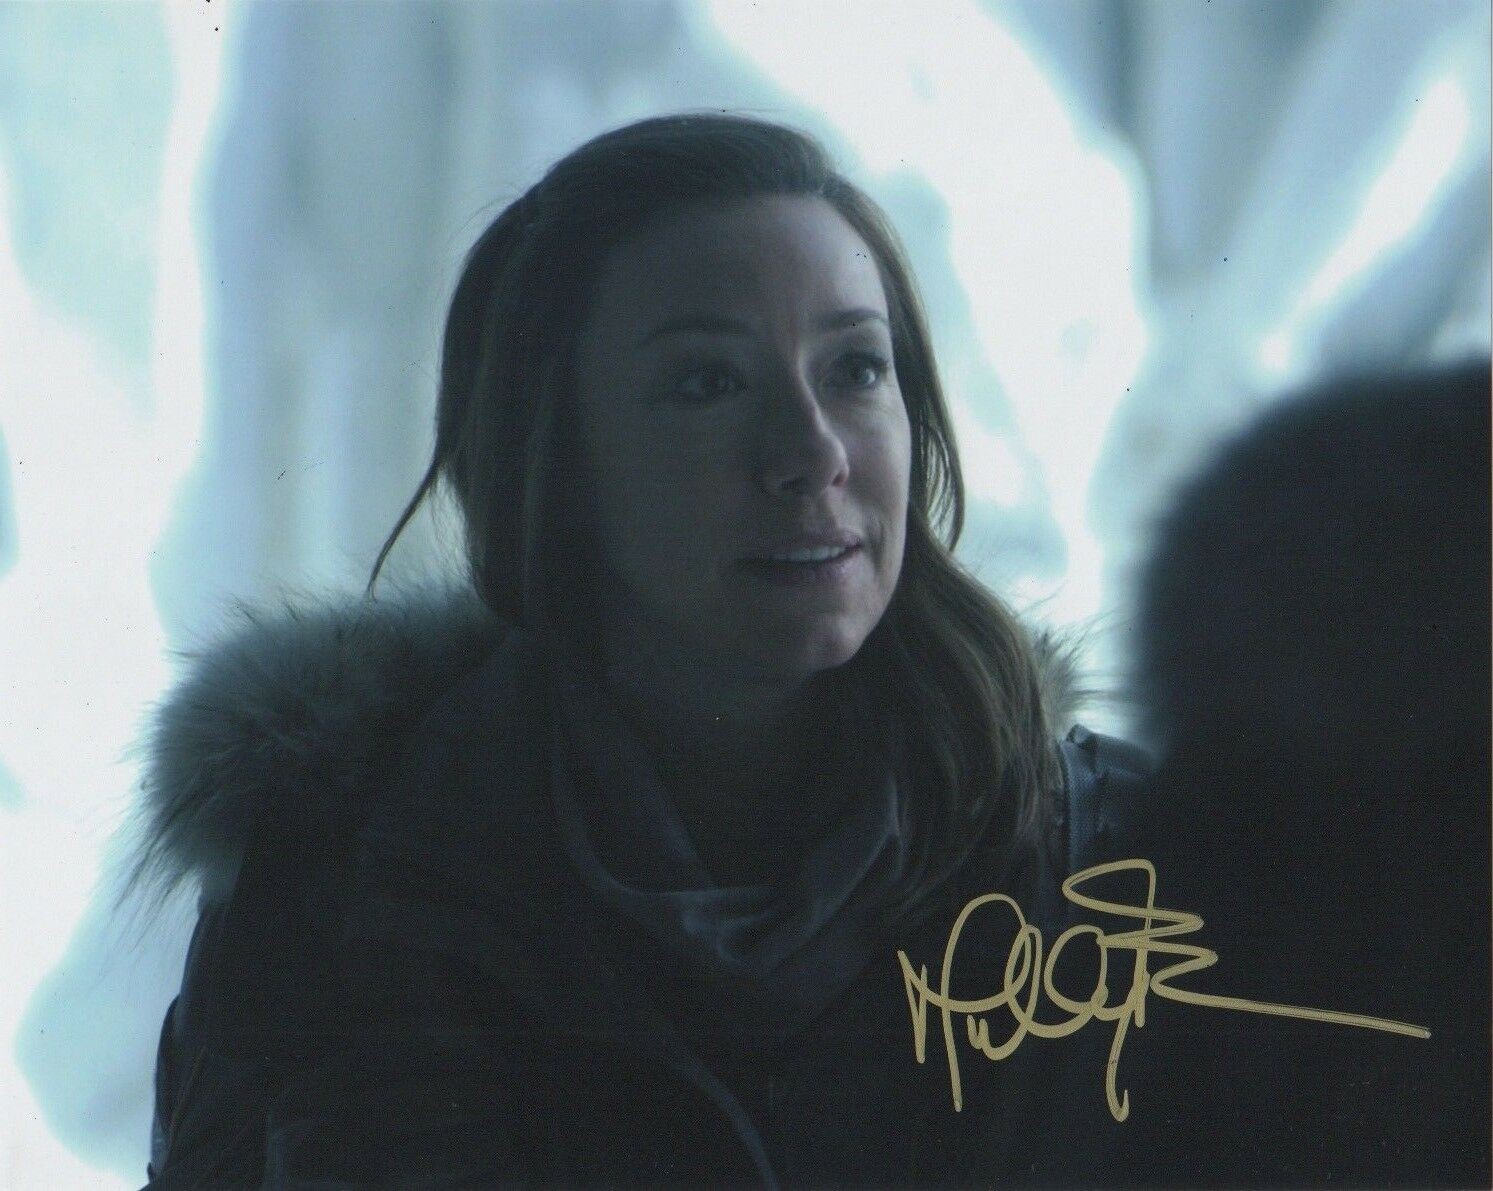 Molly Parker Lost in Space Signed Autograph 8x10 Photo #3 - Outlaw Hobbies Authentic Autographs